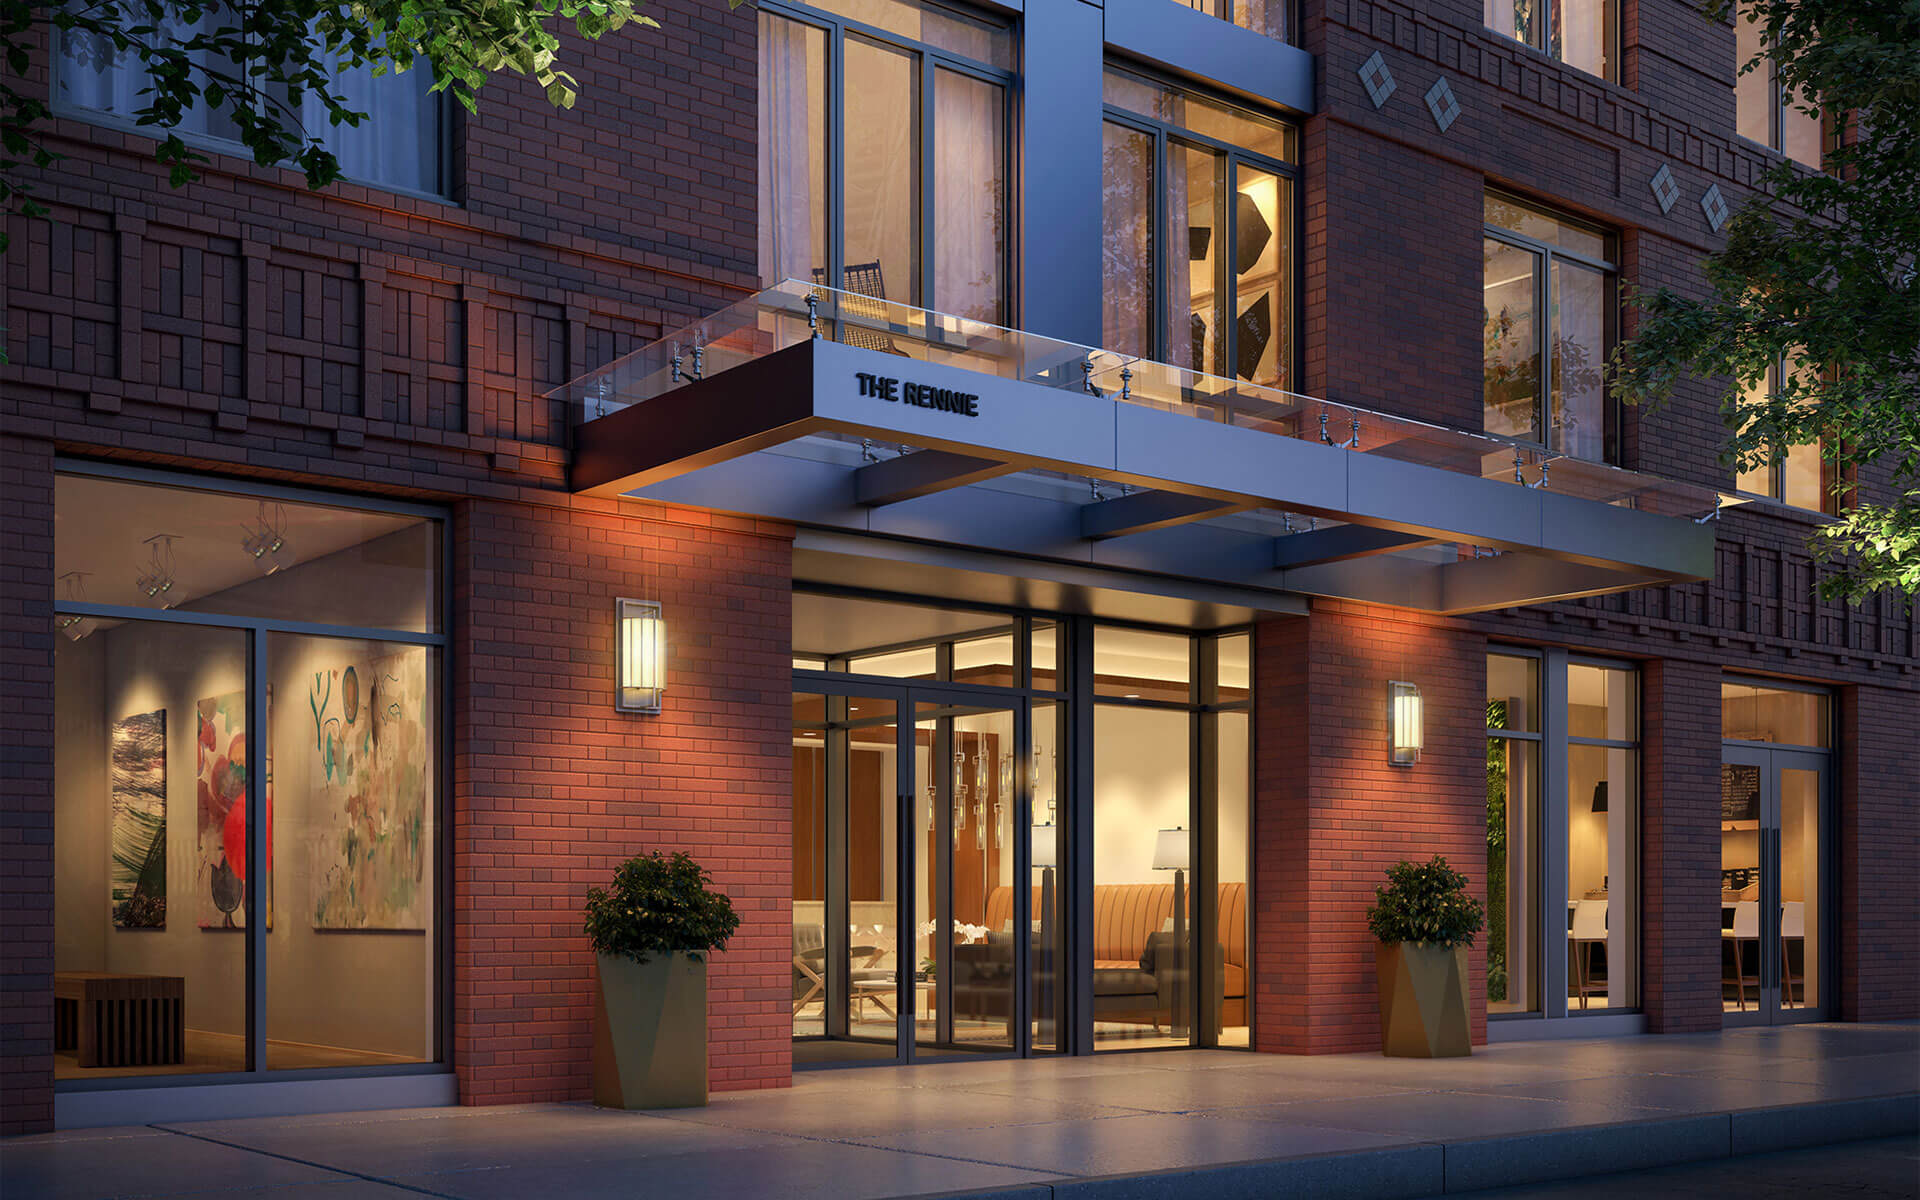 A medley of brand-new Harlem condos in the heart of a dynamic community